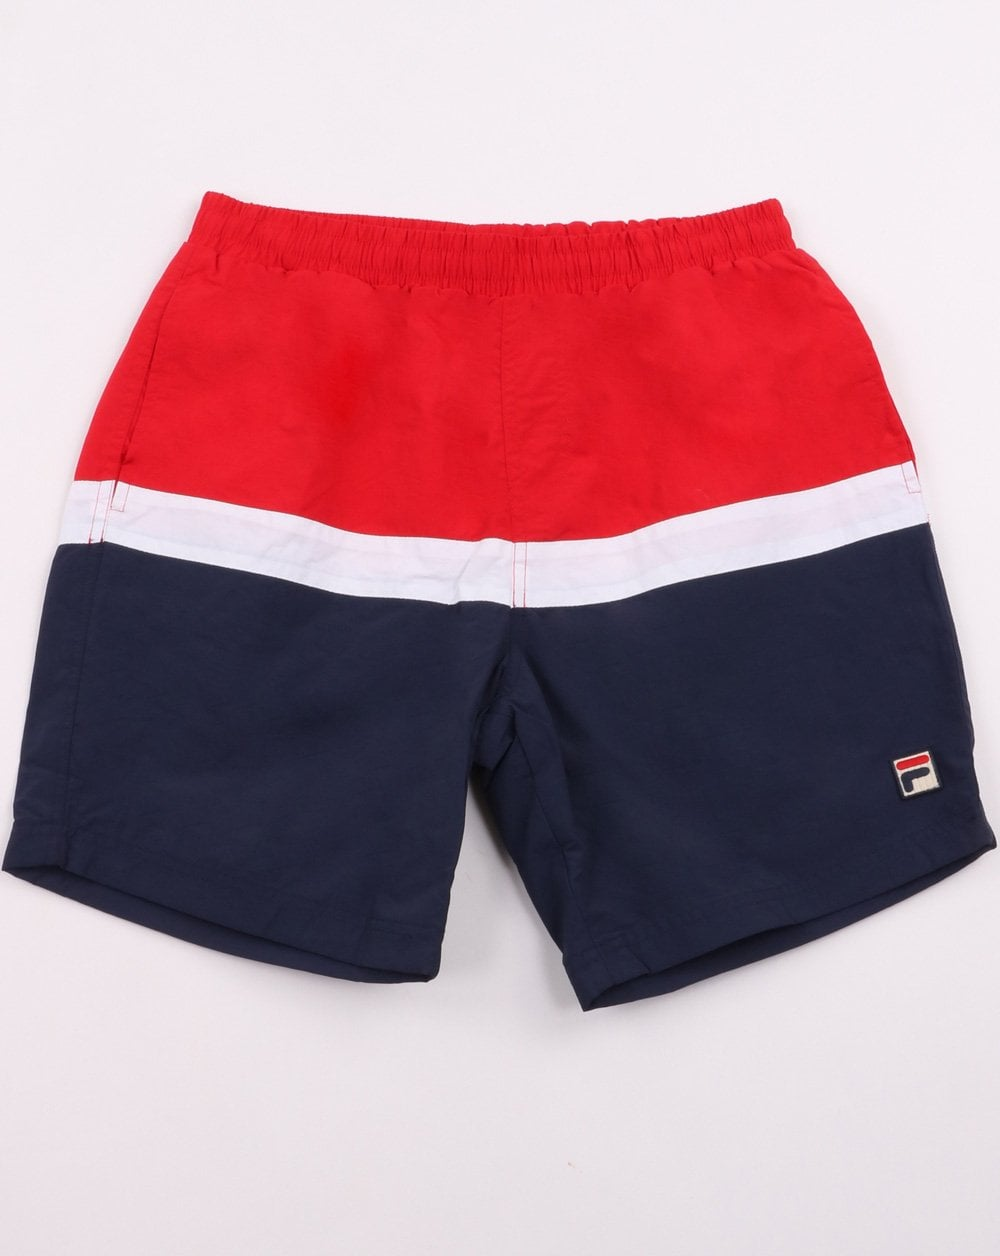 2825d2e2a0 Fila Vintage Swim Shorts, Navy/Red/White | 80s Casual Classics